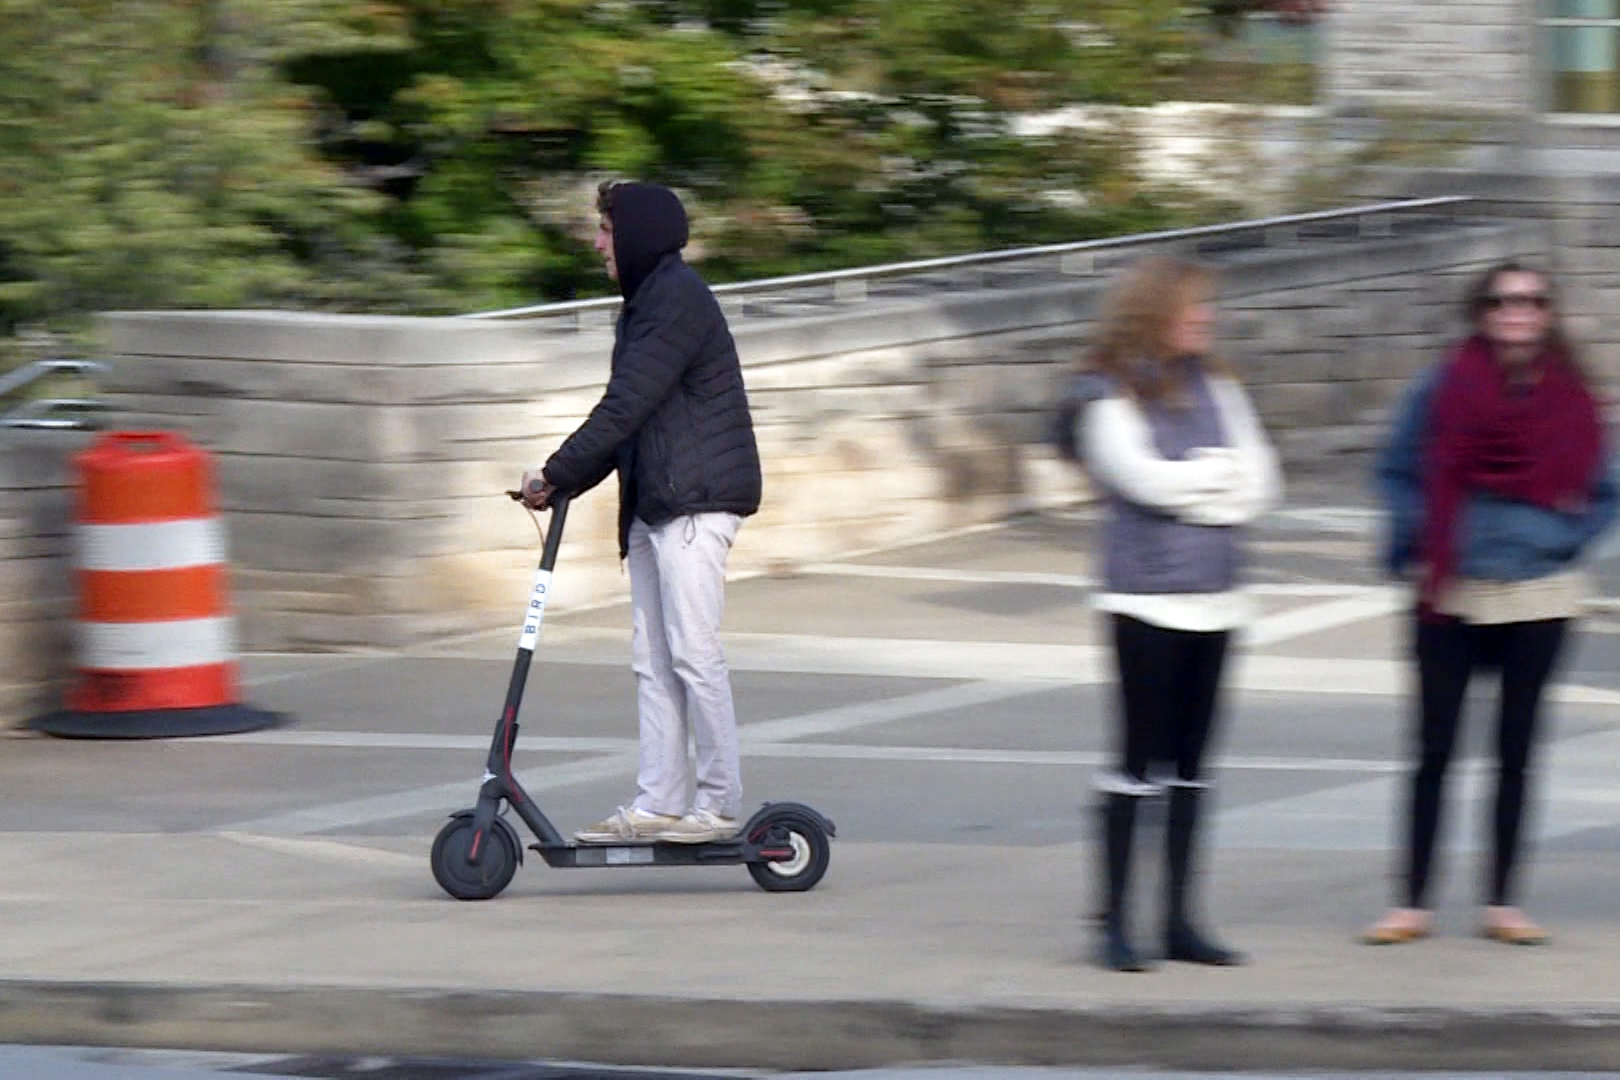 A student rides a Bird electric scooter through campus.